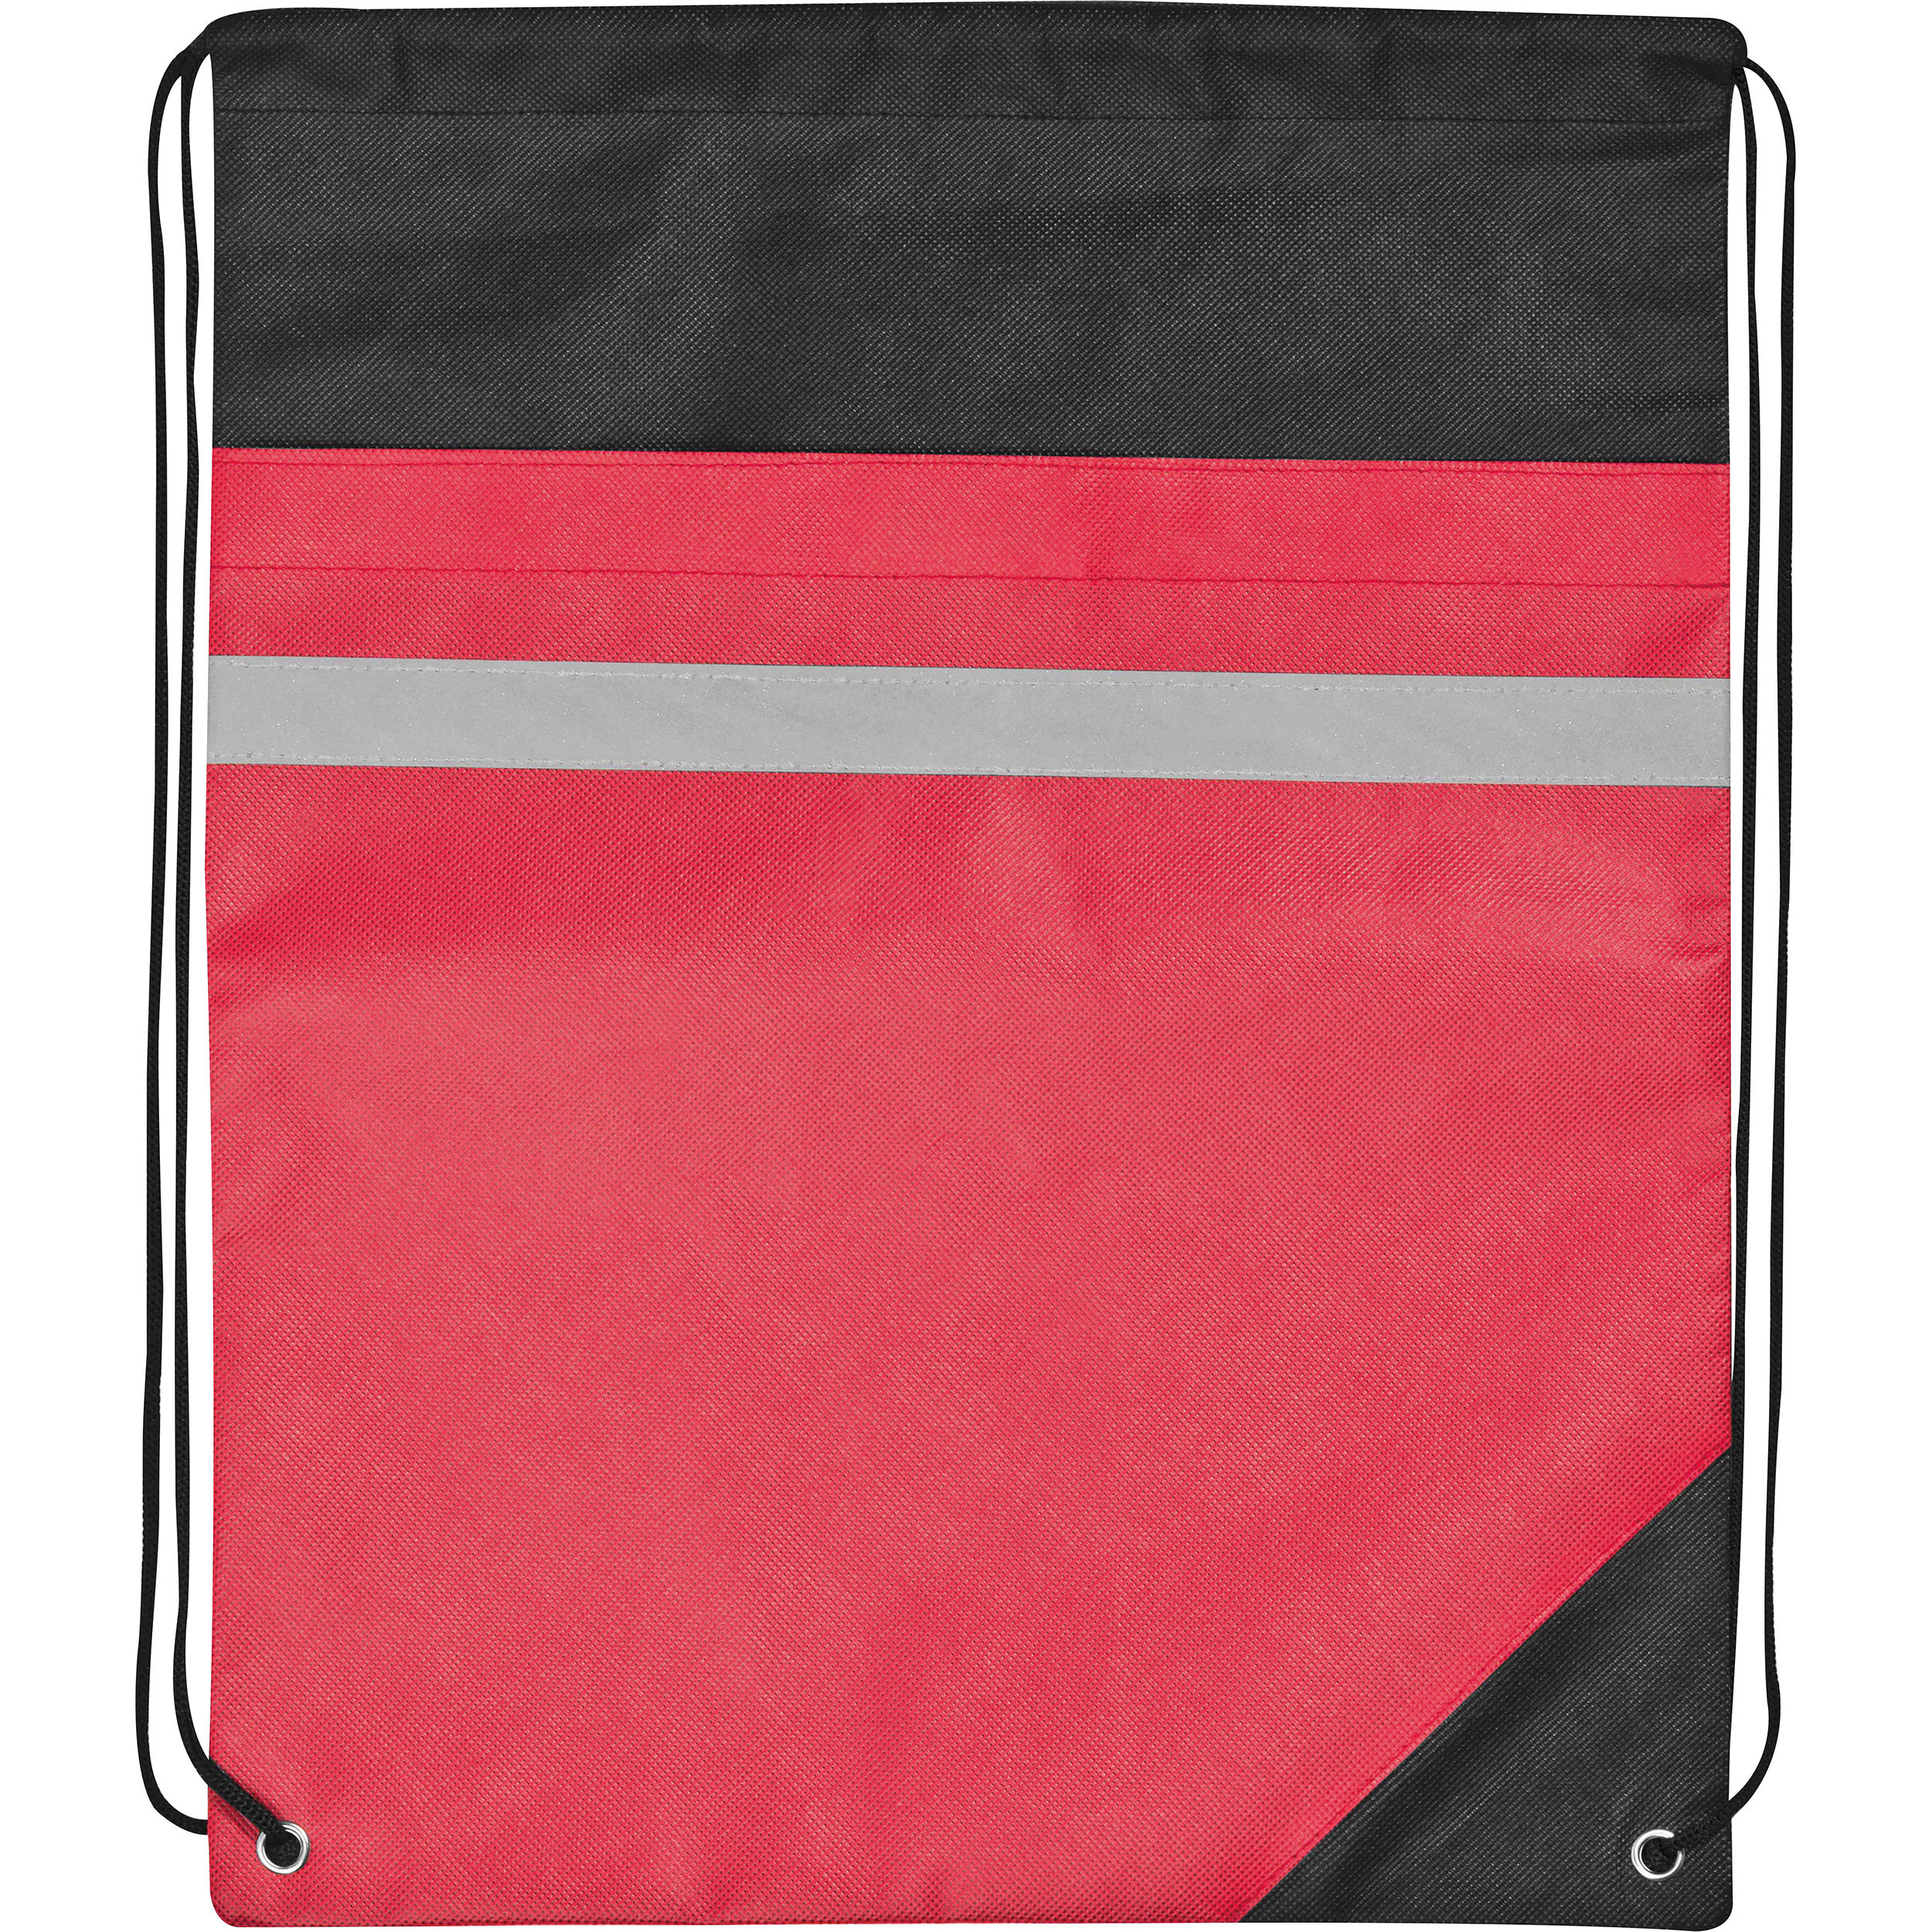 Non-woven gym bag including reflectable stripe